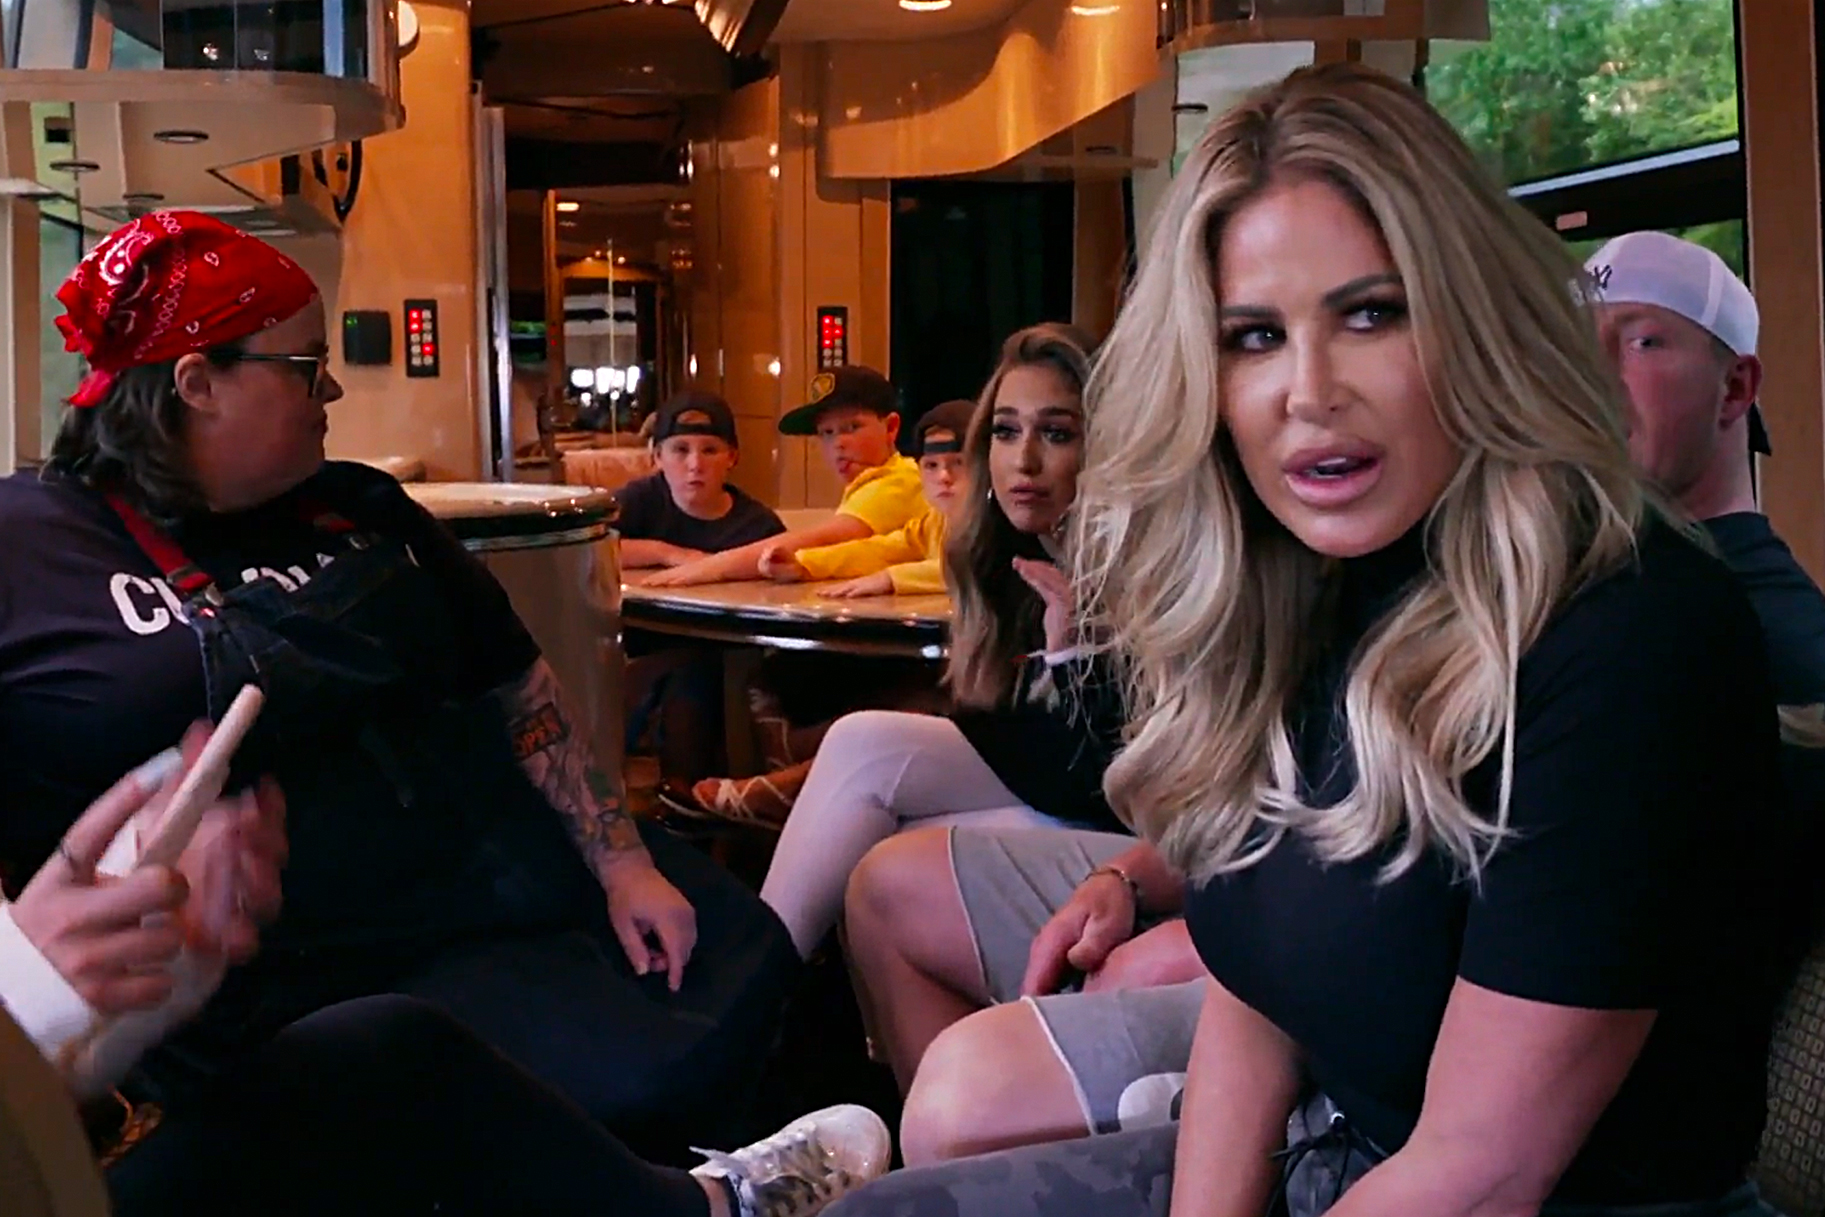 Kim Zolciak Biermann Rv Covid